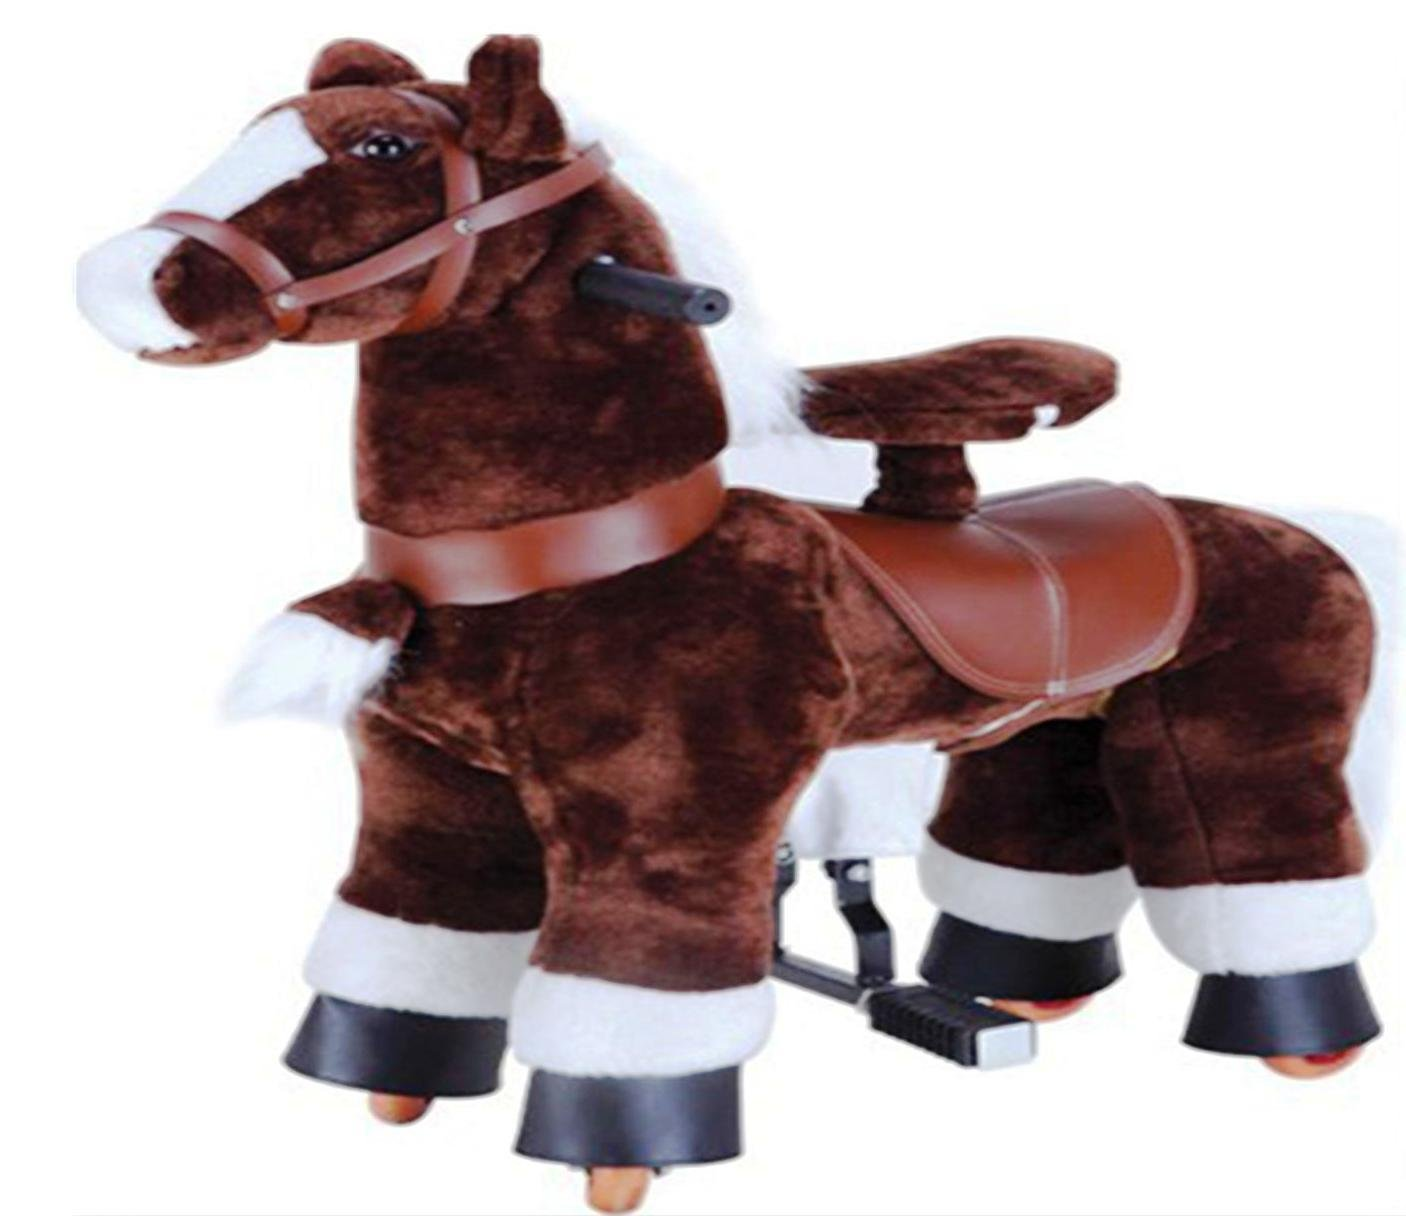 Chocolate Brown SMALL Trotting Action Horse Pony Ages 2-5 Boys & Girl Ride on Cycle Giddy Up Cowboy! by TODDLER TOYS